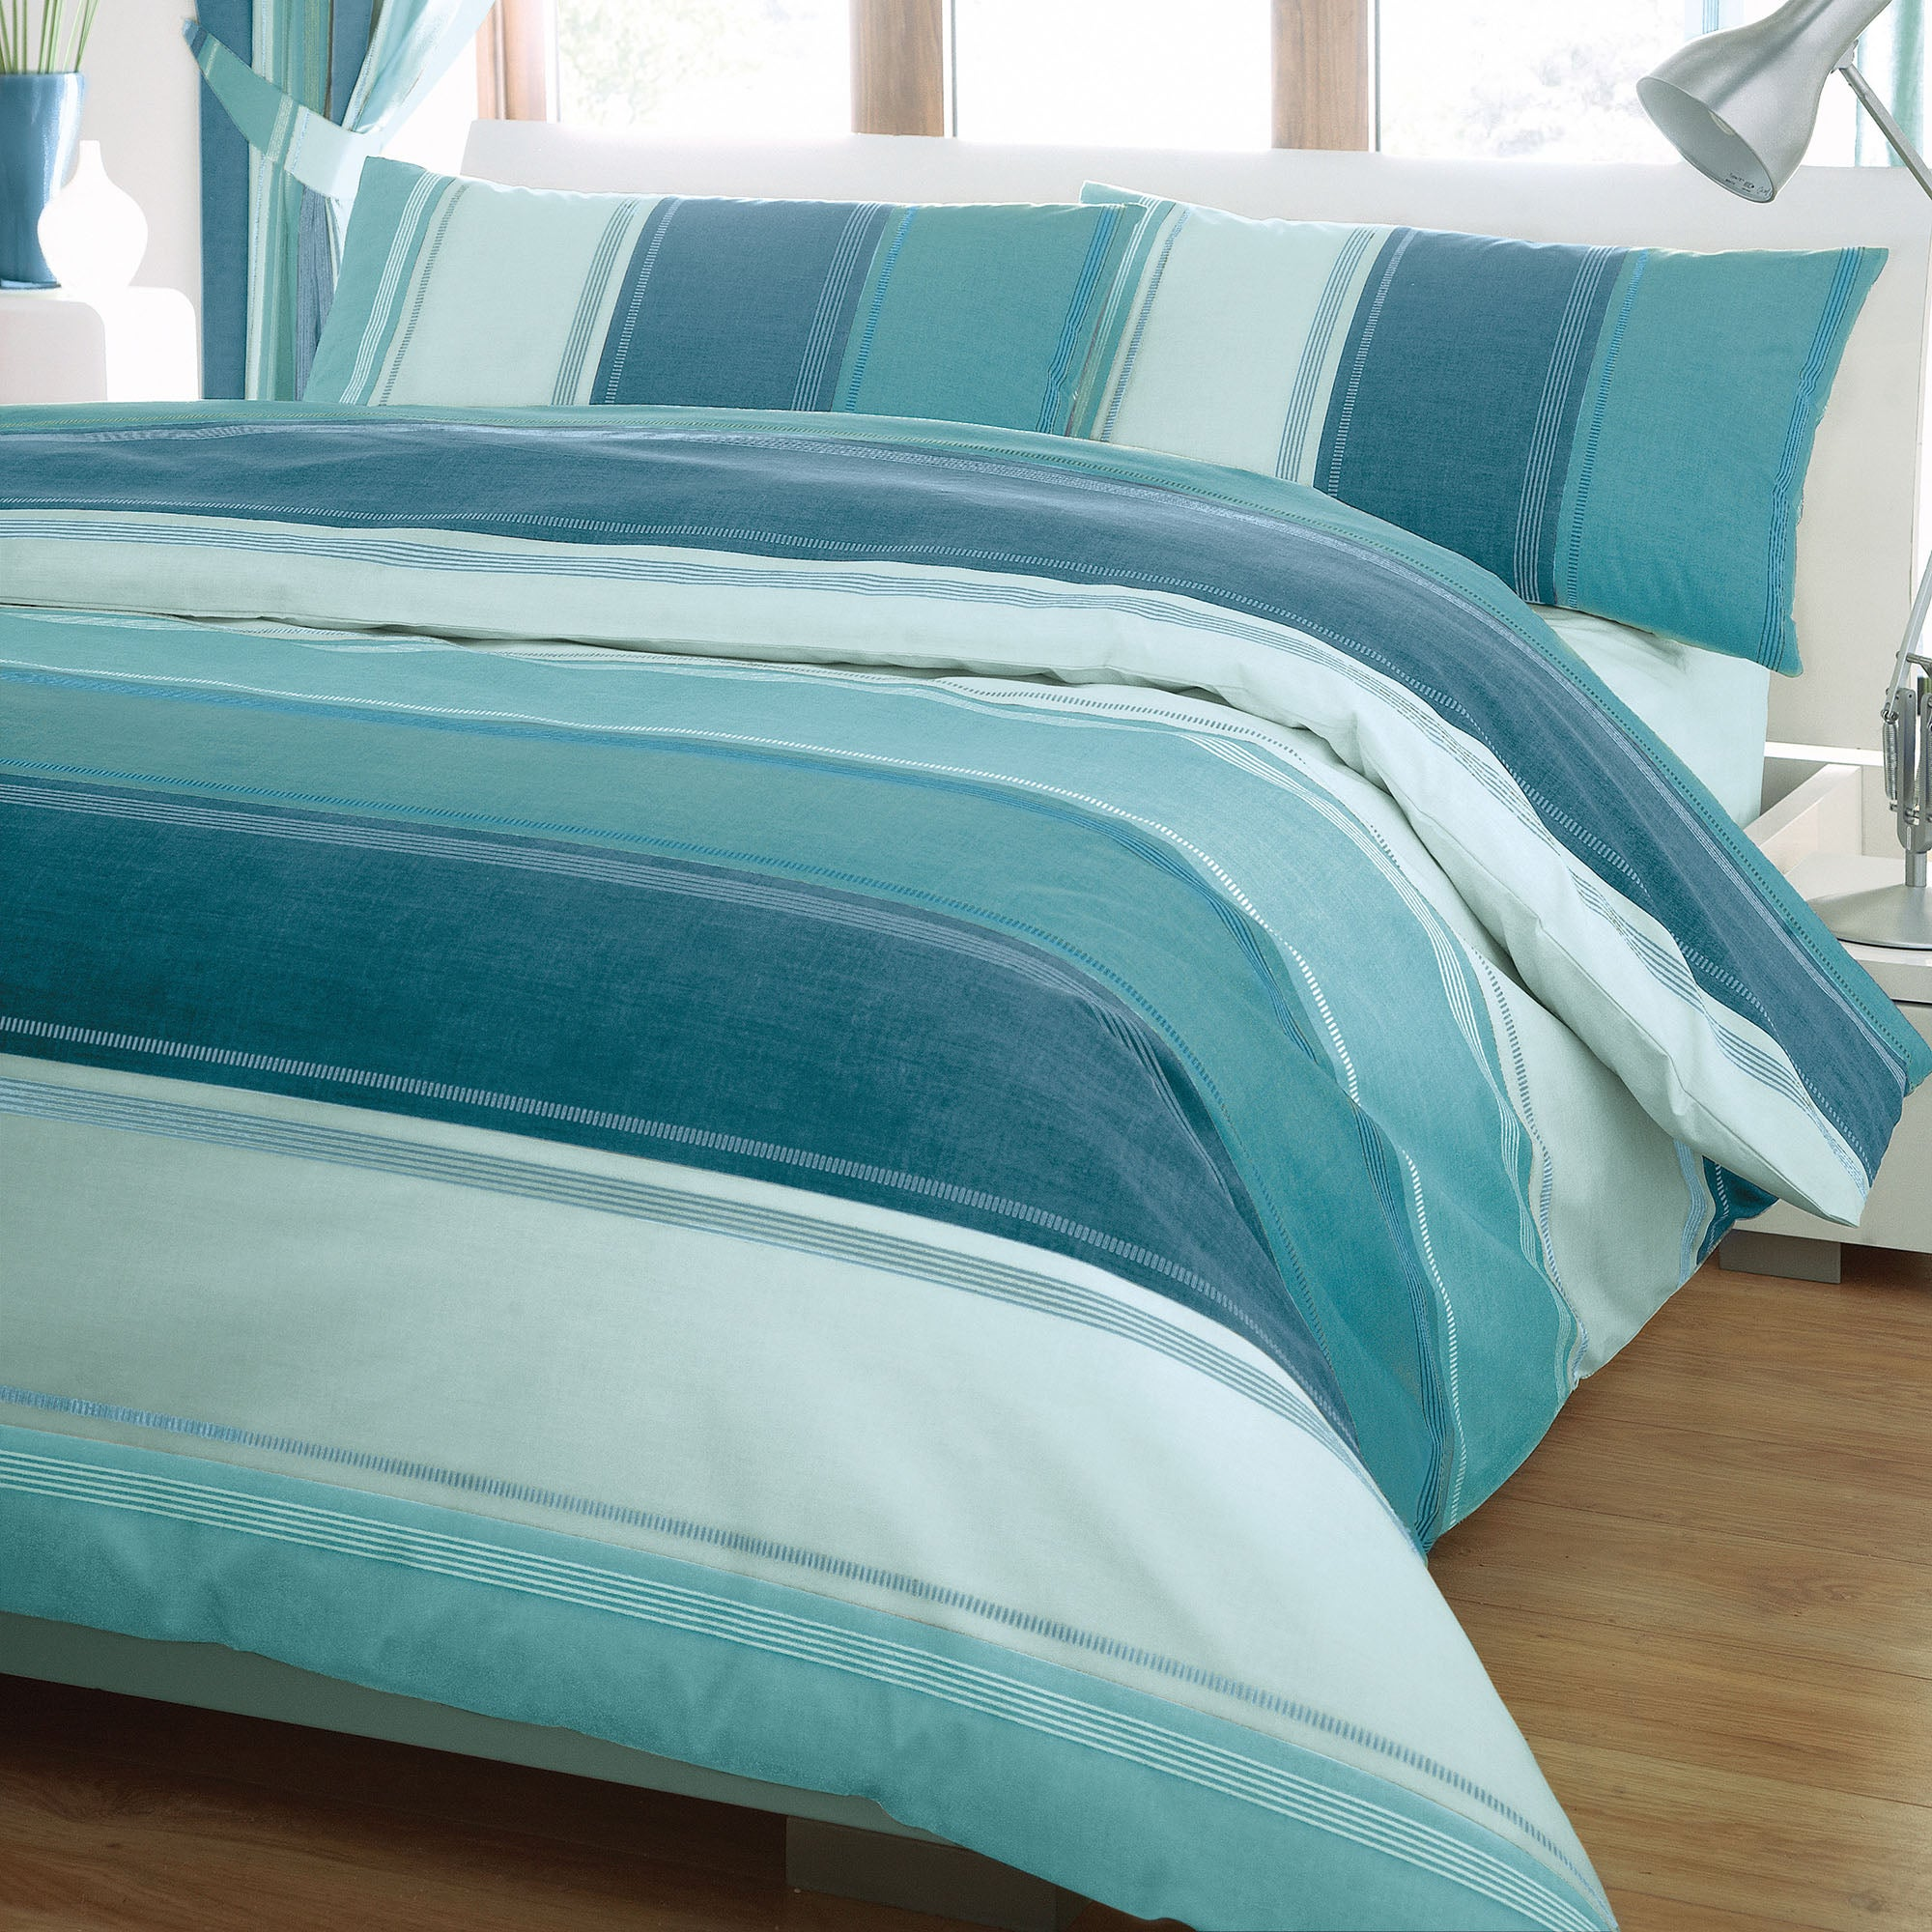 Teal Finley Collection Duvet Cover Set